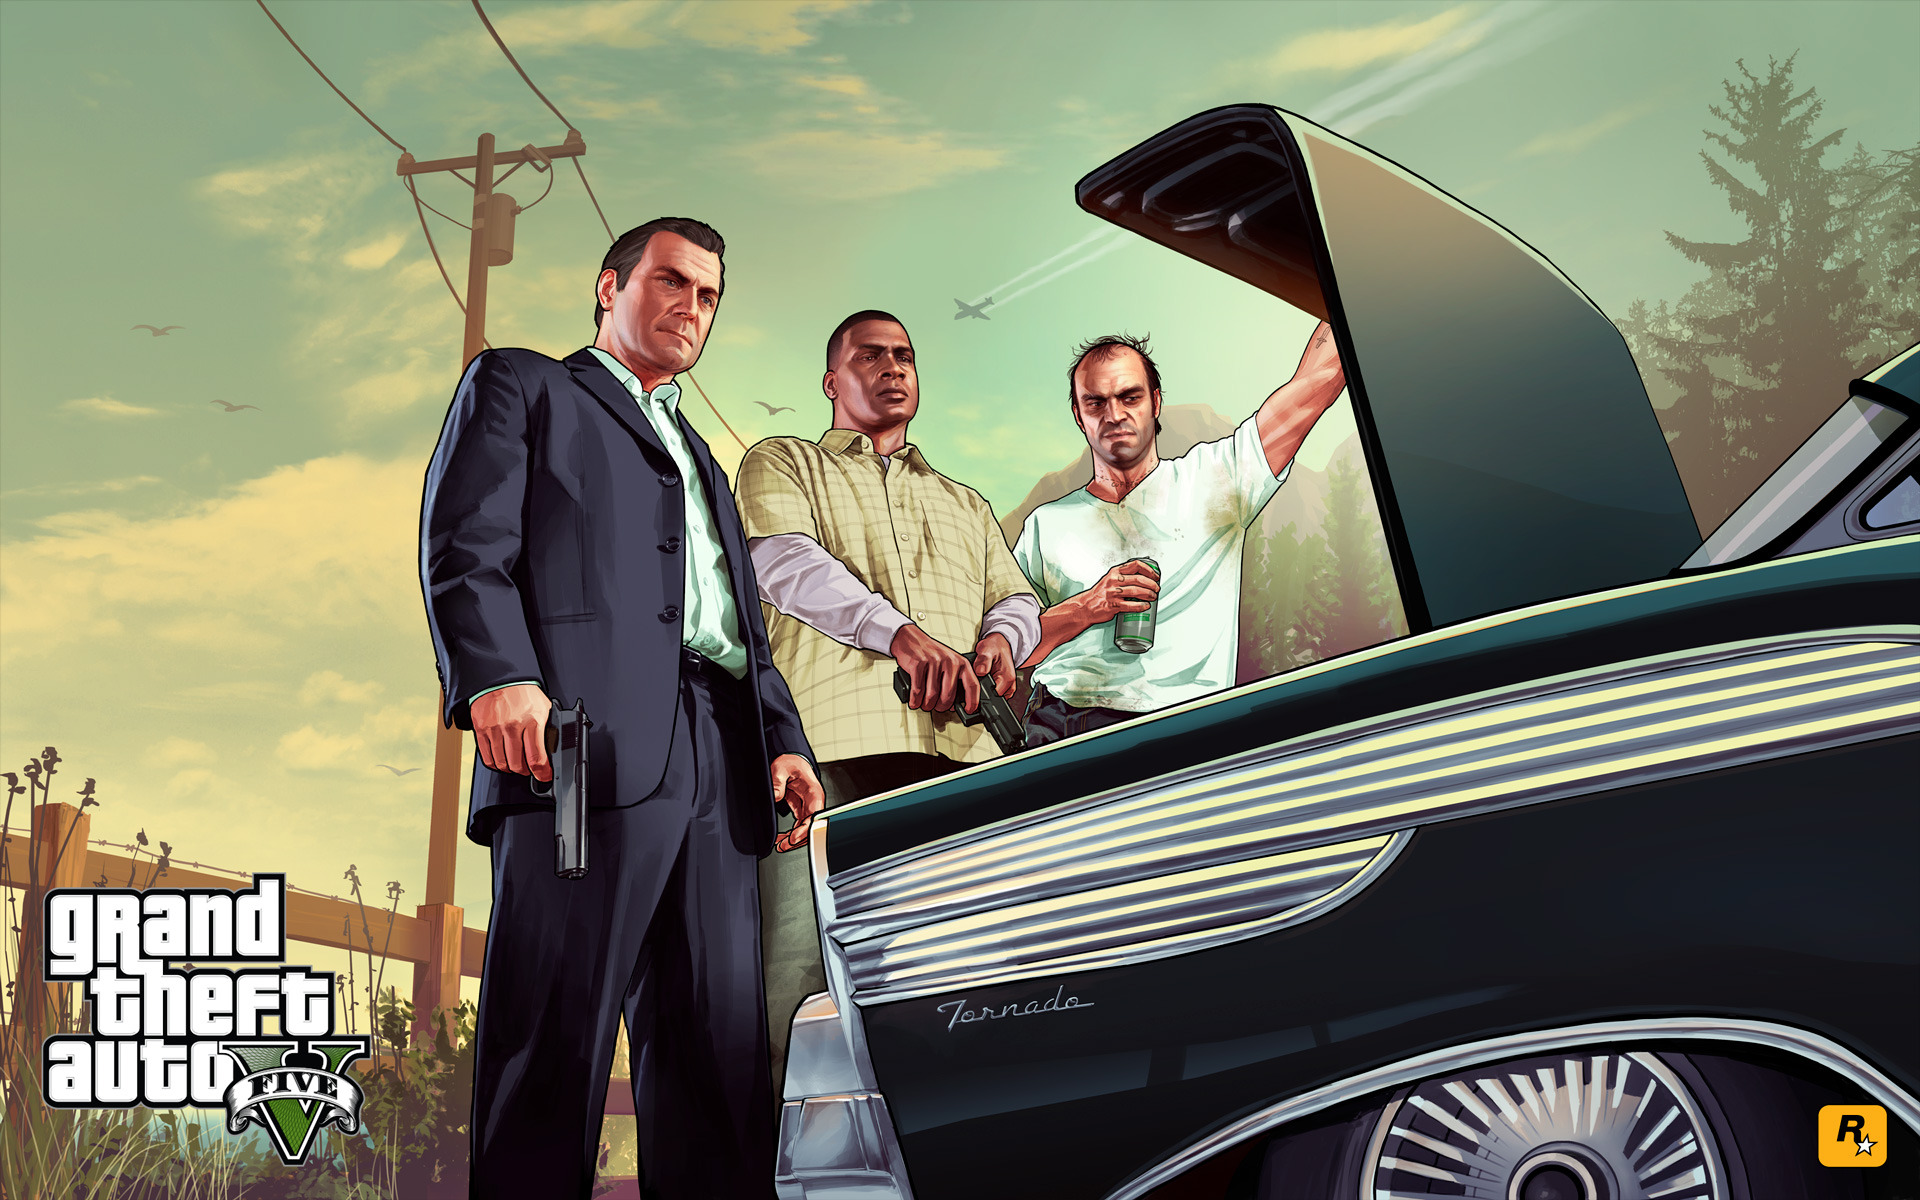 Grand Theft Auto 5 Characters Wallpaper